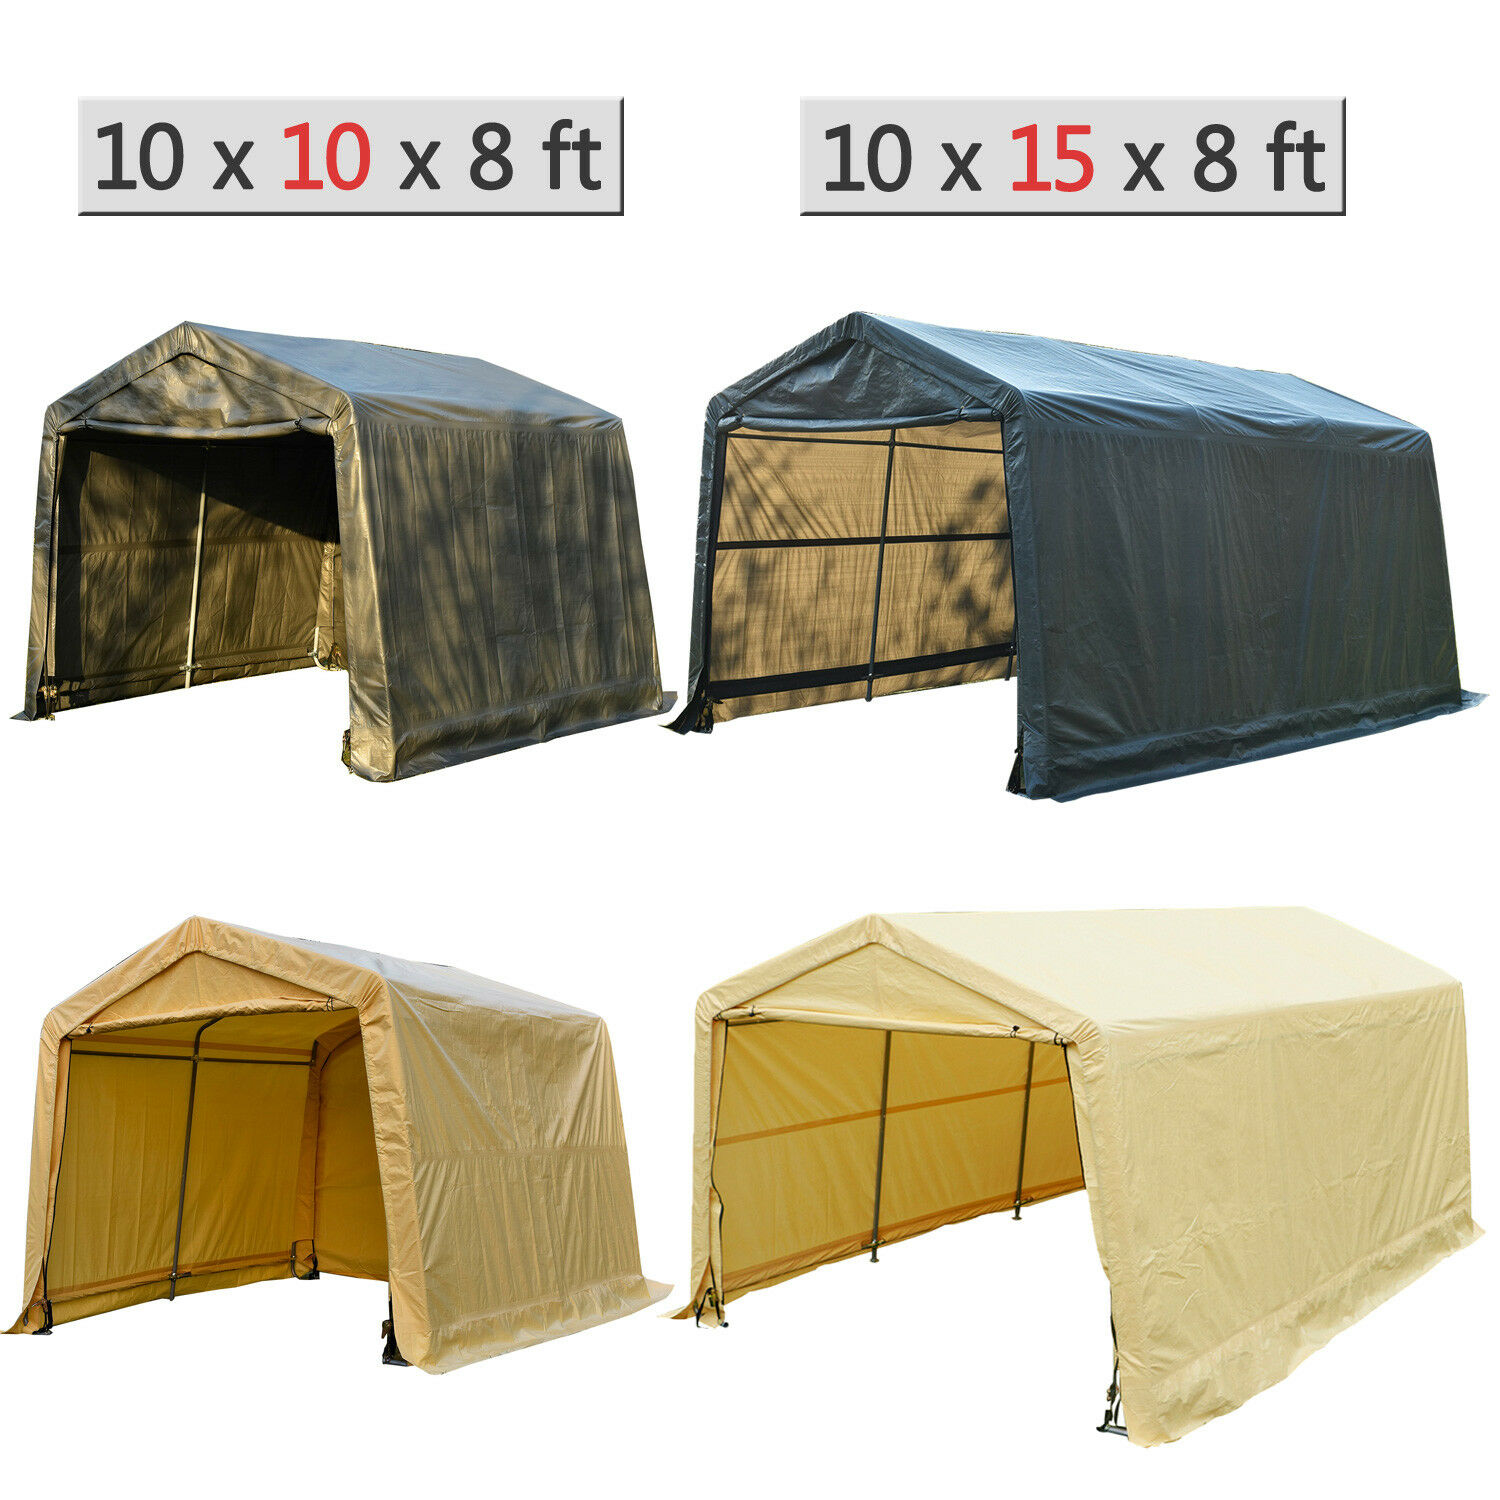 Canopy Carport Tent Auto Shelter Car Storage Shed Cover Outd